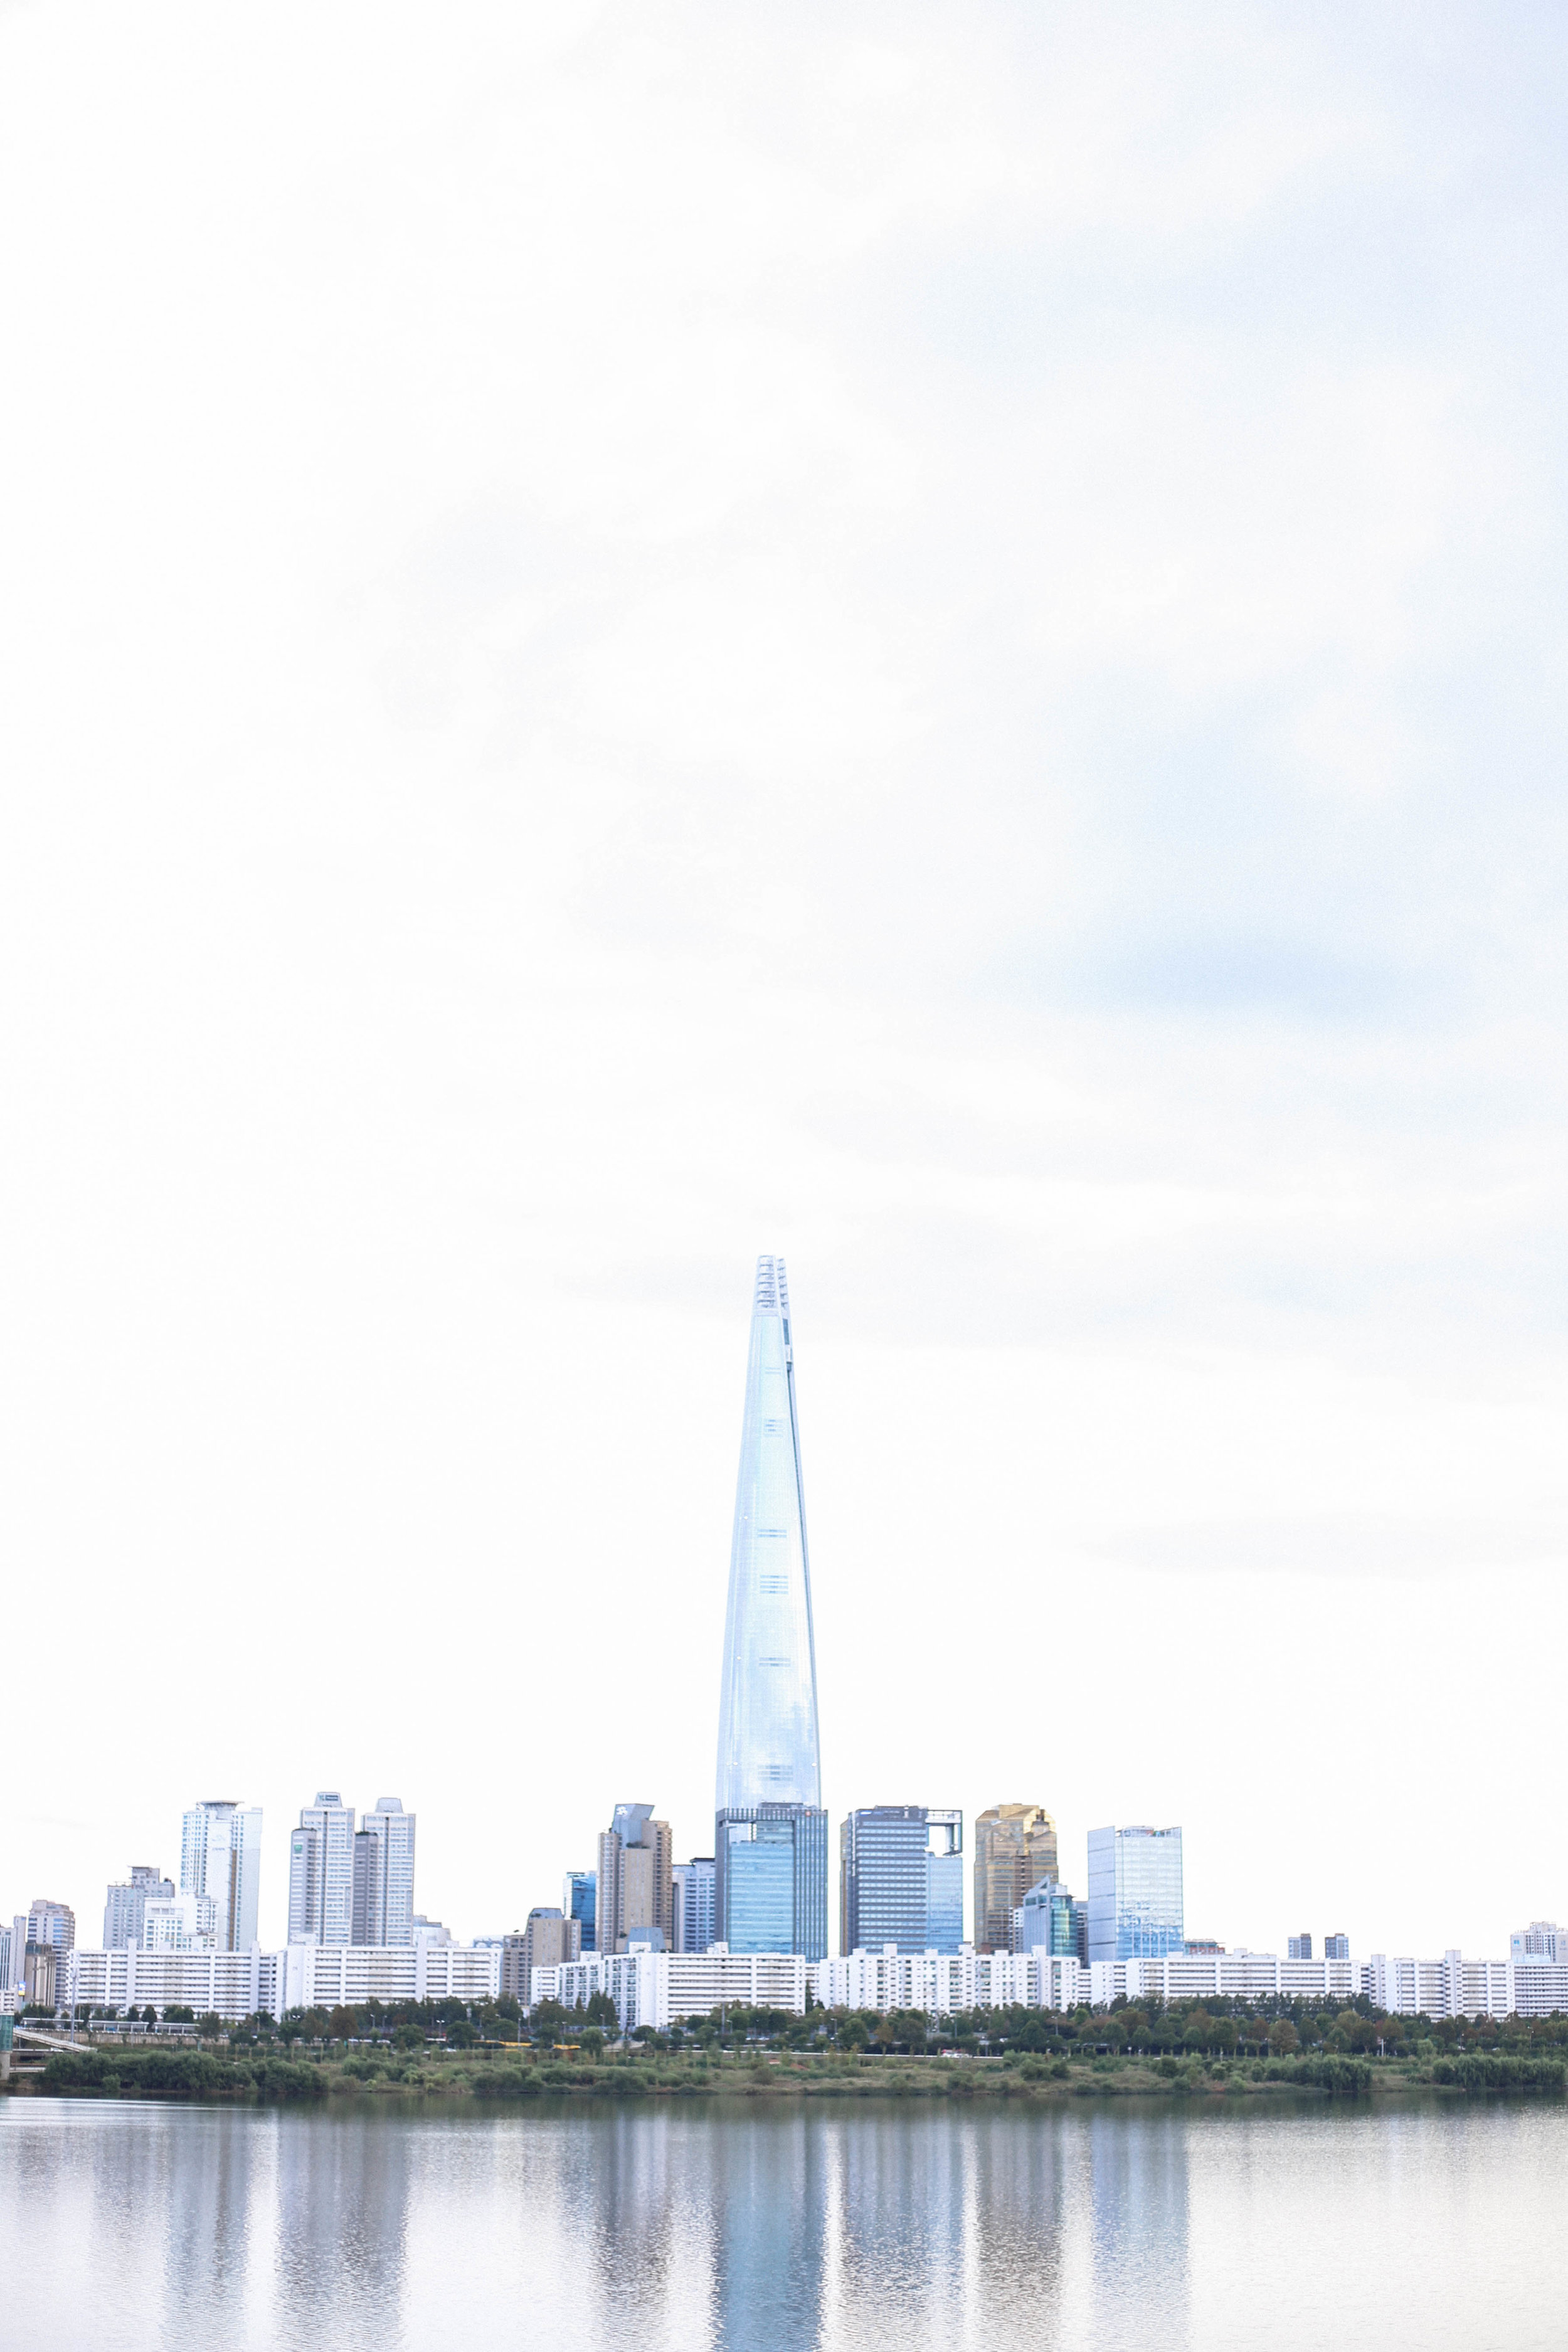 Exploring Your Own City | On the Street Where We Live (aretherelilactrees.com)  Lotte Tower, Seoul, South Korea